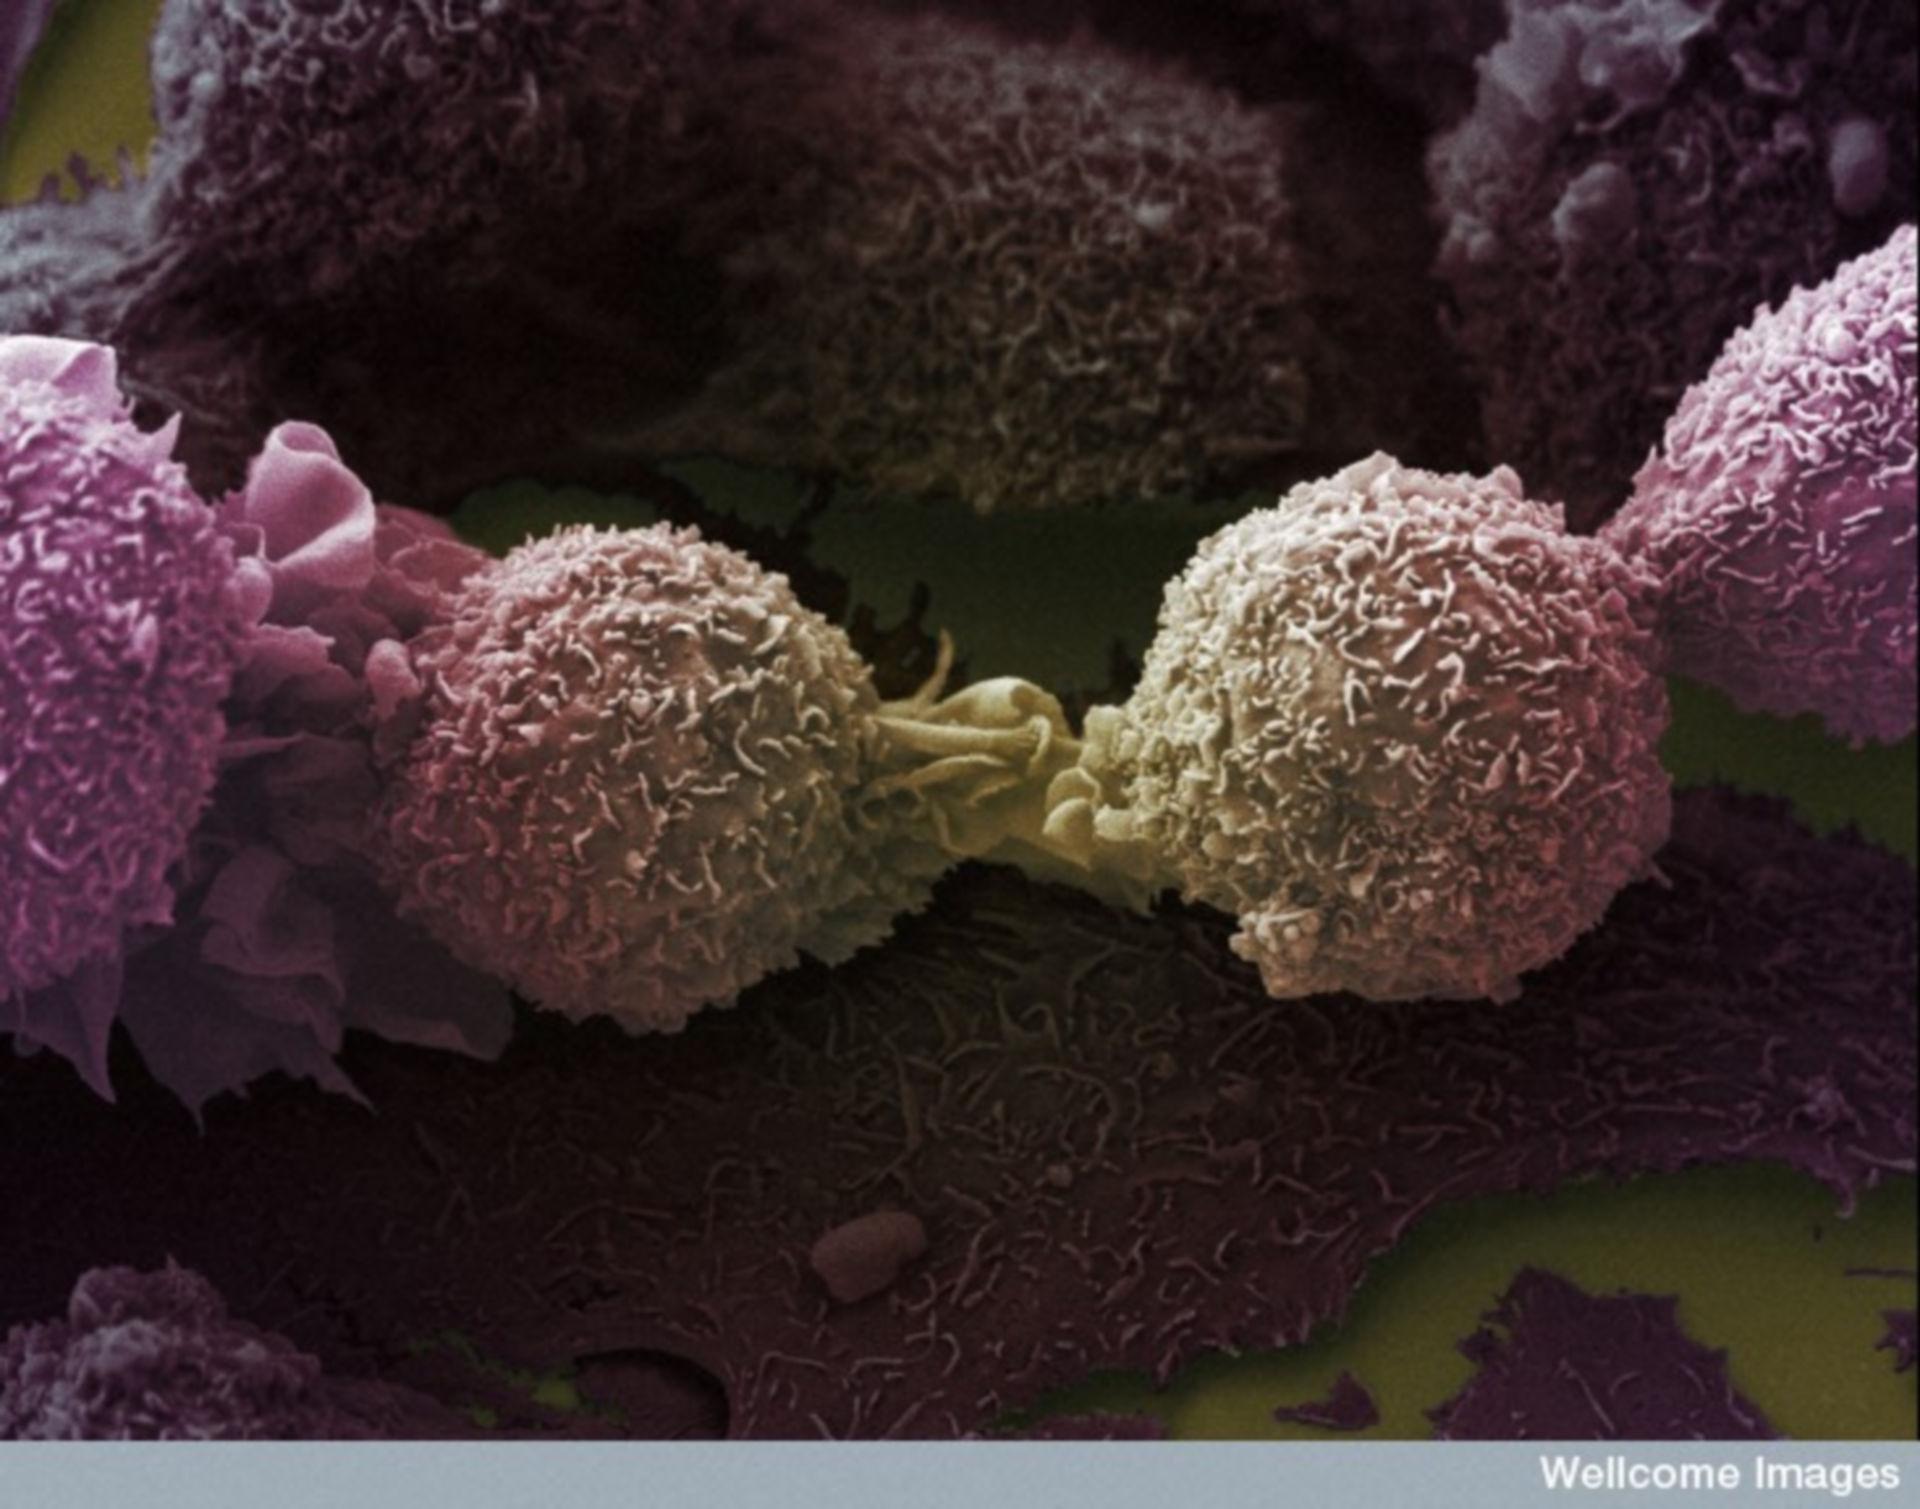 No Joke for Cancer. Image of the Week - July 23, 2018 - CIL:39107 - http://www.cellimagelibrary.org/images/39107